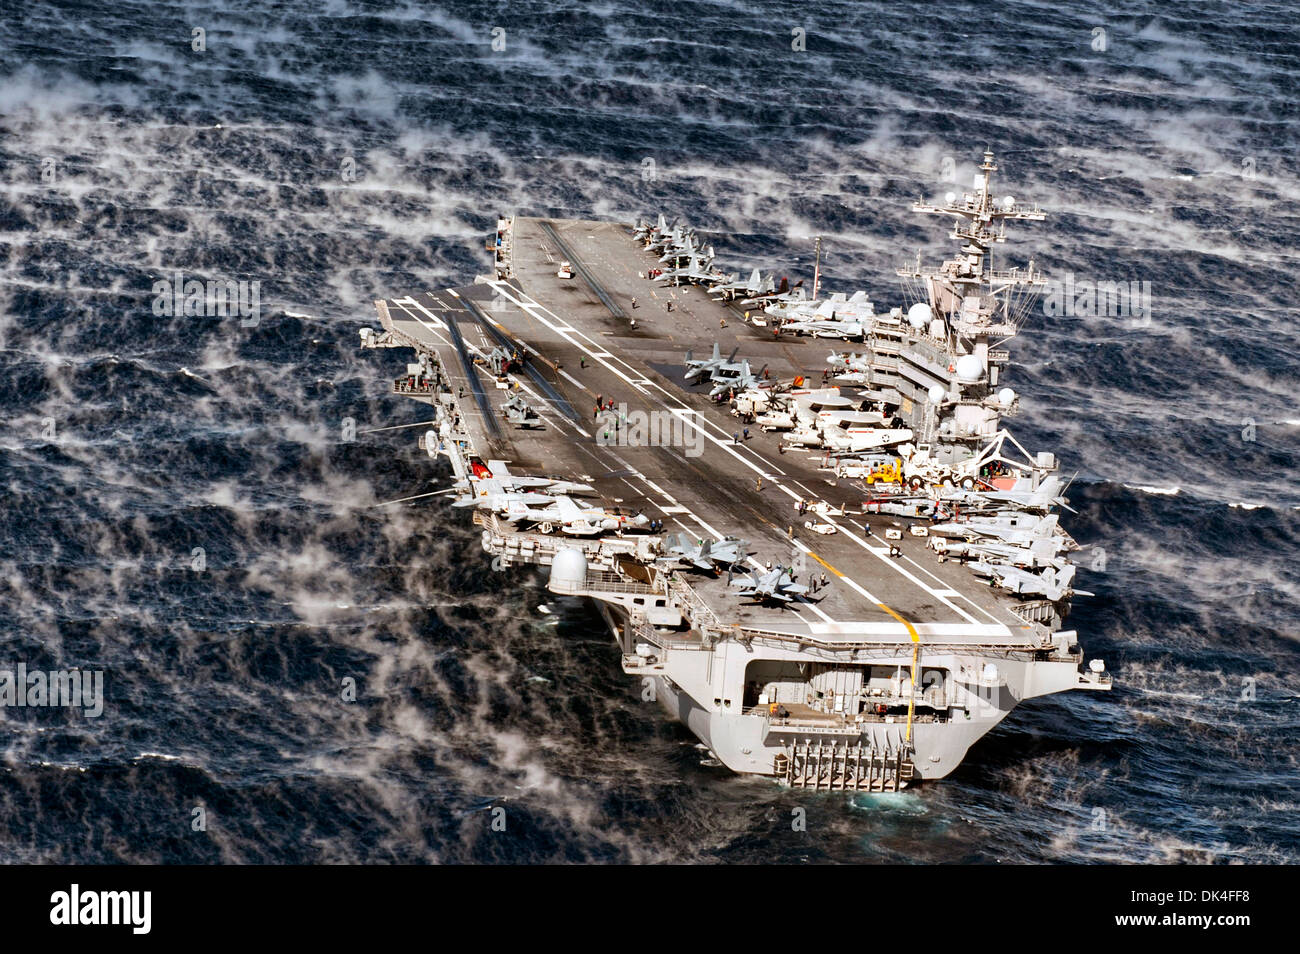 US Navy nuclear powered aircraft carrier USS George H.W. Bush steams through stormy seas during training exercises November 24, 2013 in the Atlantic Ocean. - Stock Image